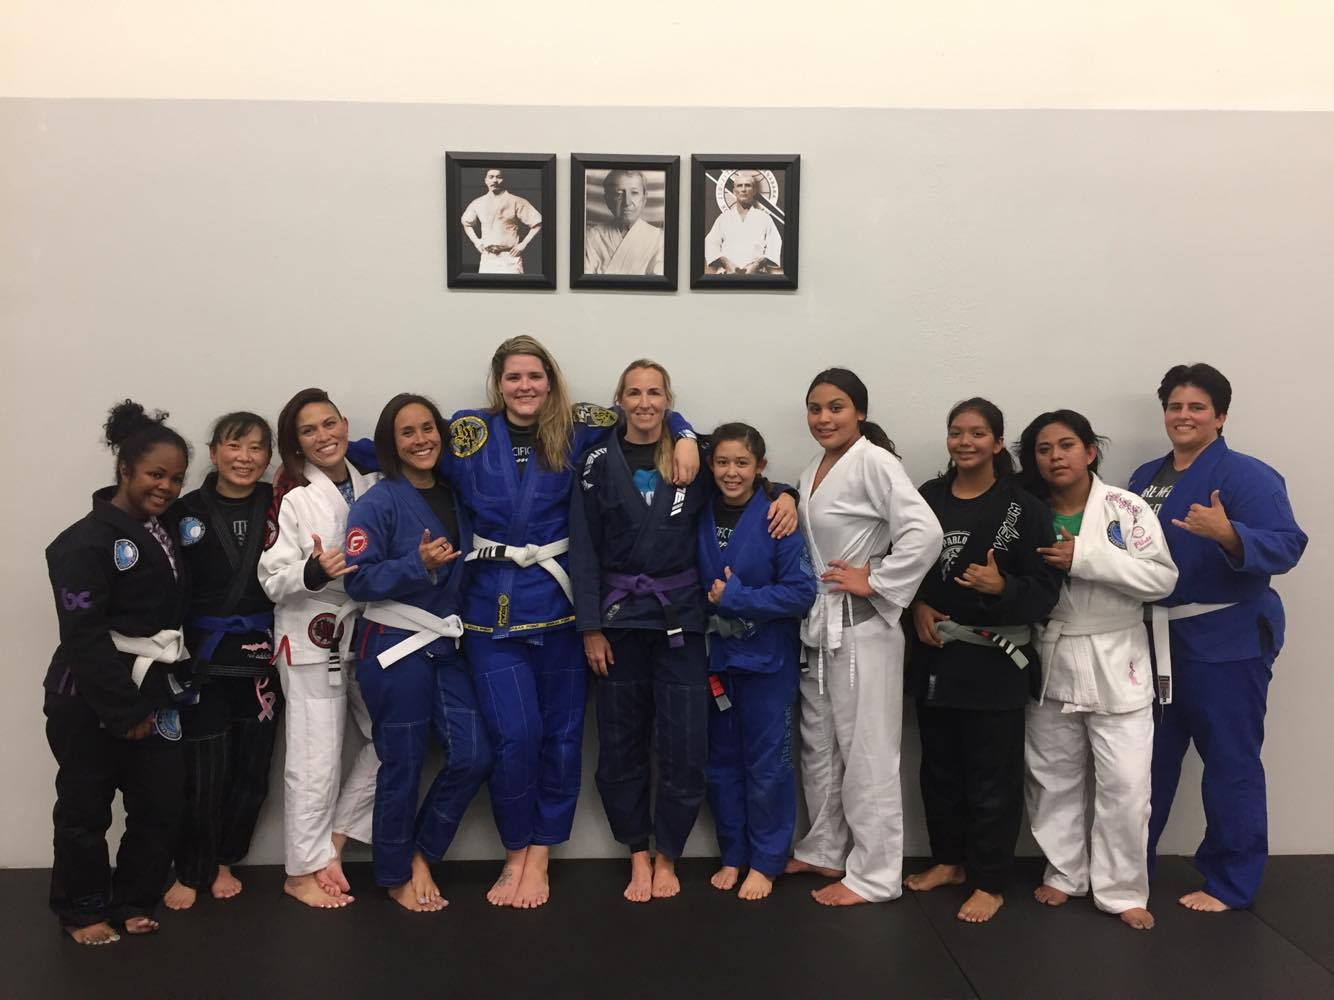 Elite Sports Team Elite Bjj Fighter Kimberly Pruyssers Image3